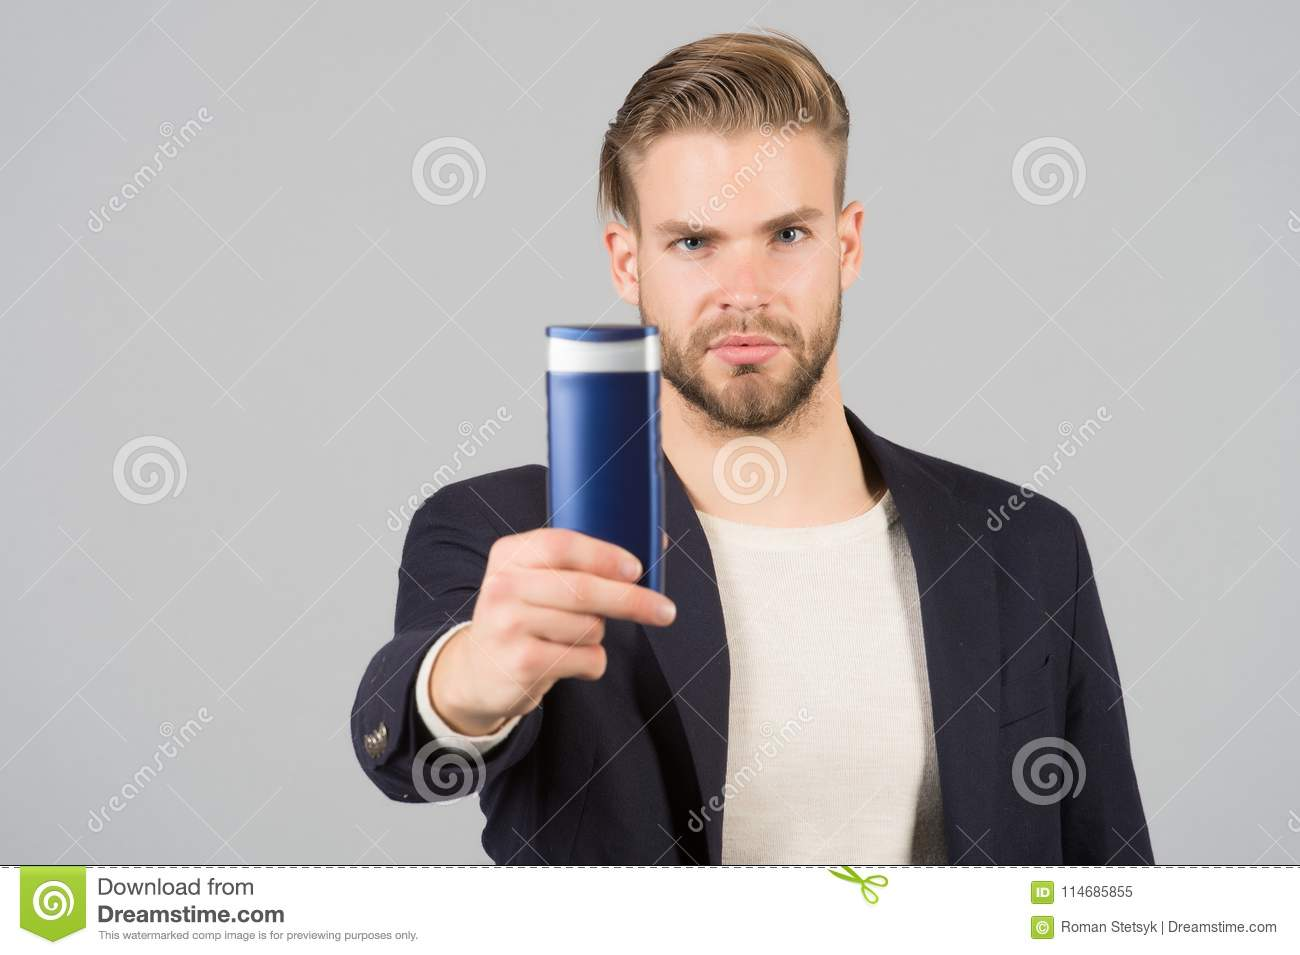 Businessman With Shampoo Or Gel Bottle In Hand Bearded Man With